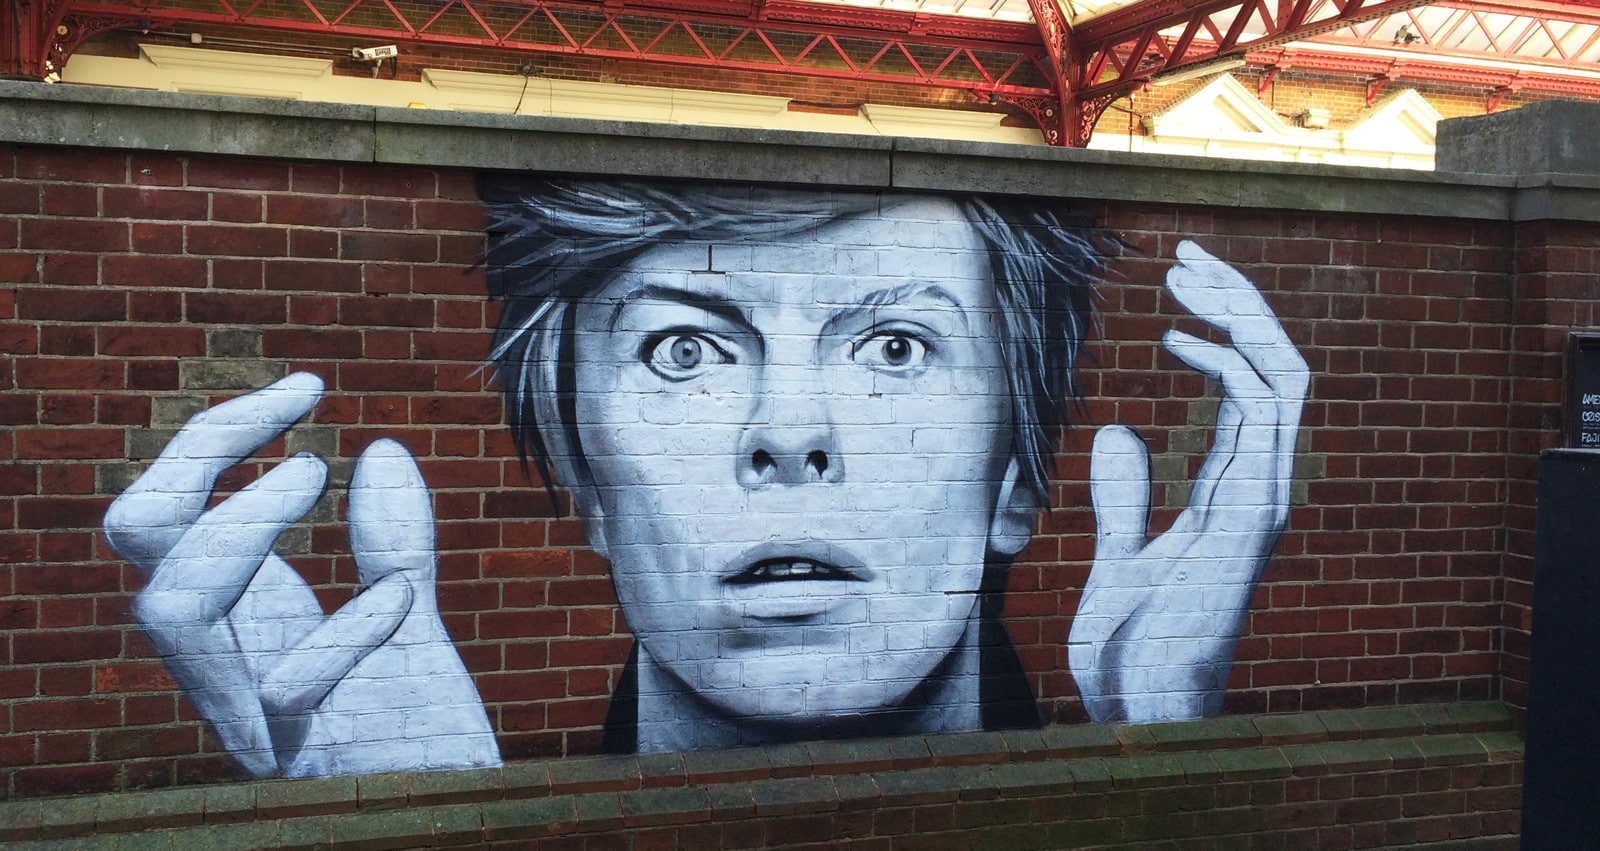 2016-02-26-Bowie-Tribute-Rocky-Graffiti-Hove-Station-7